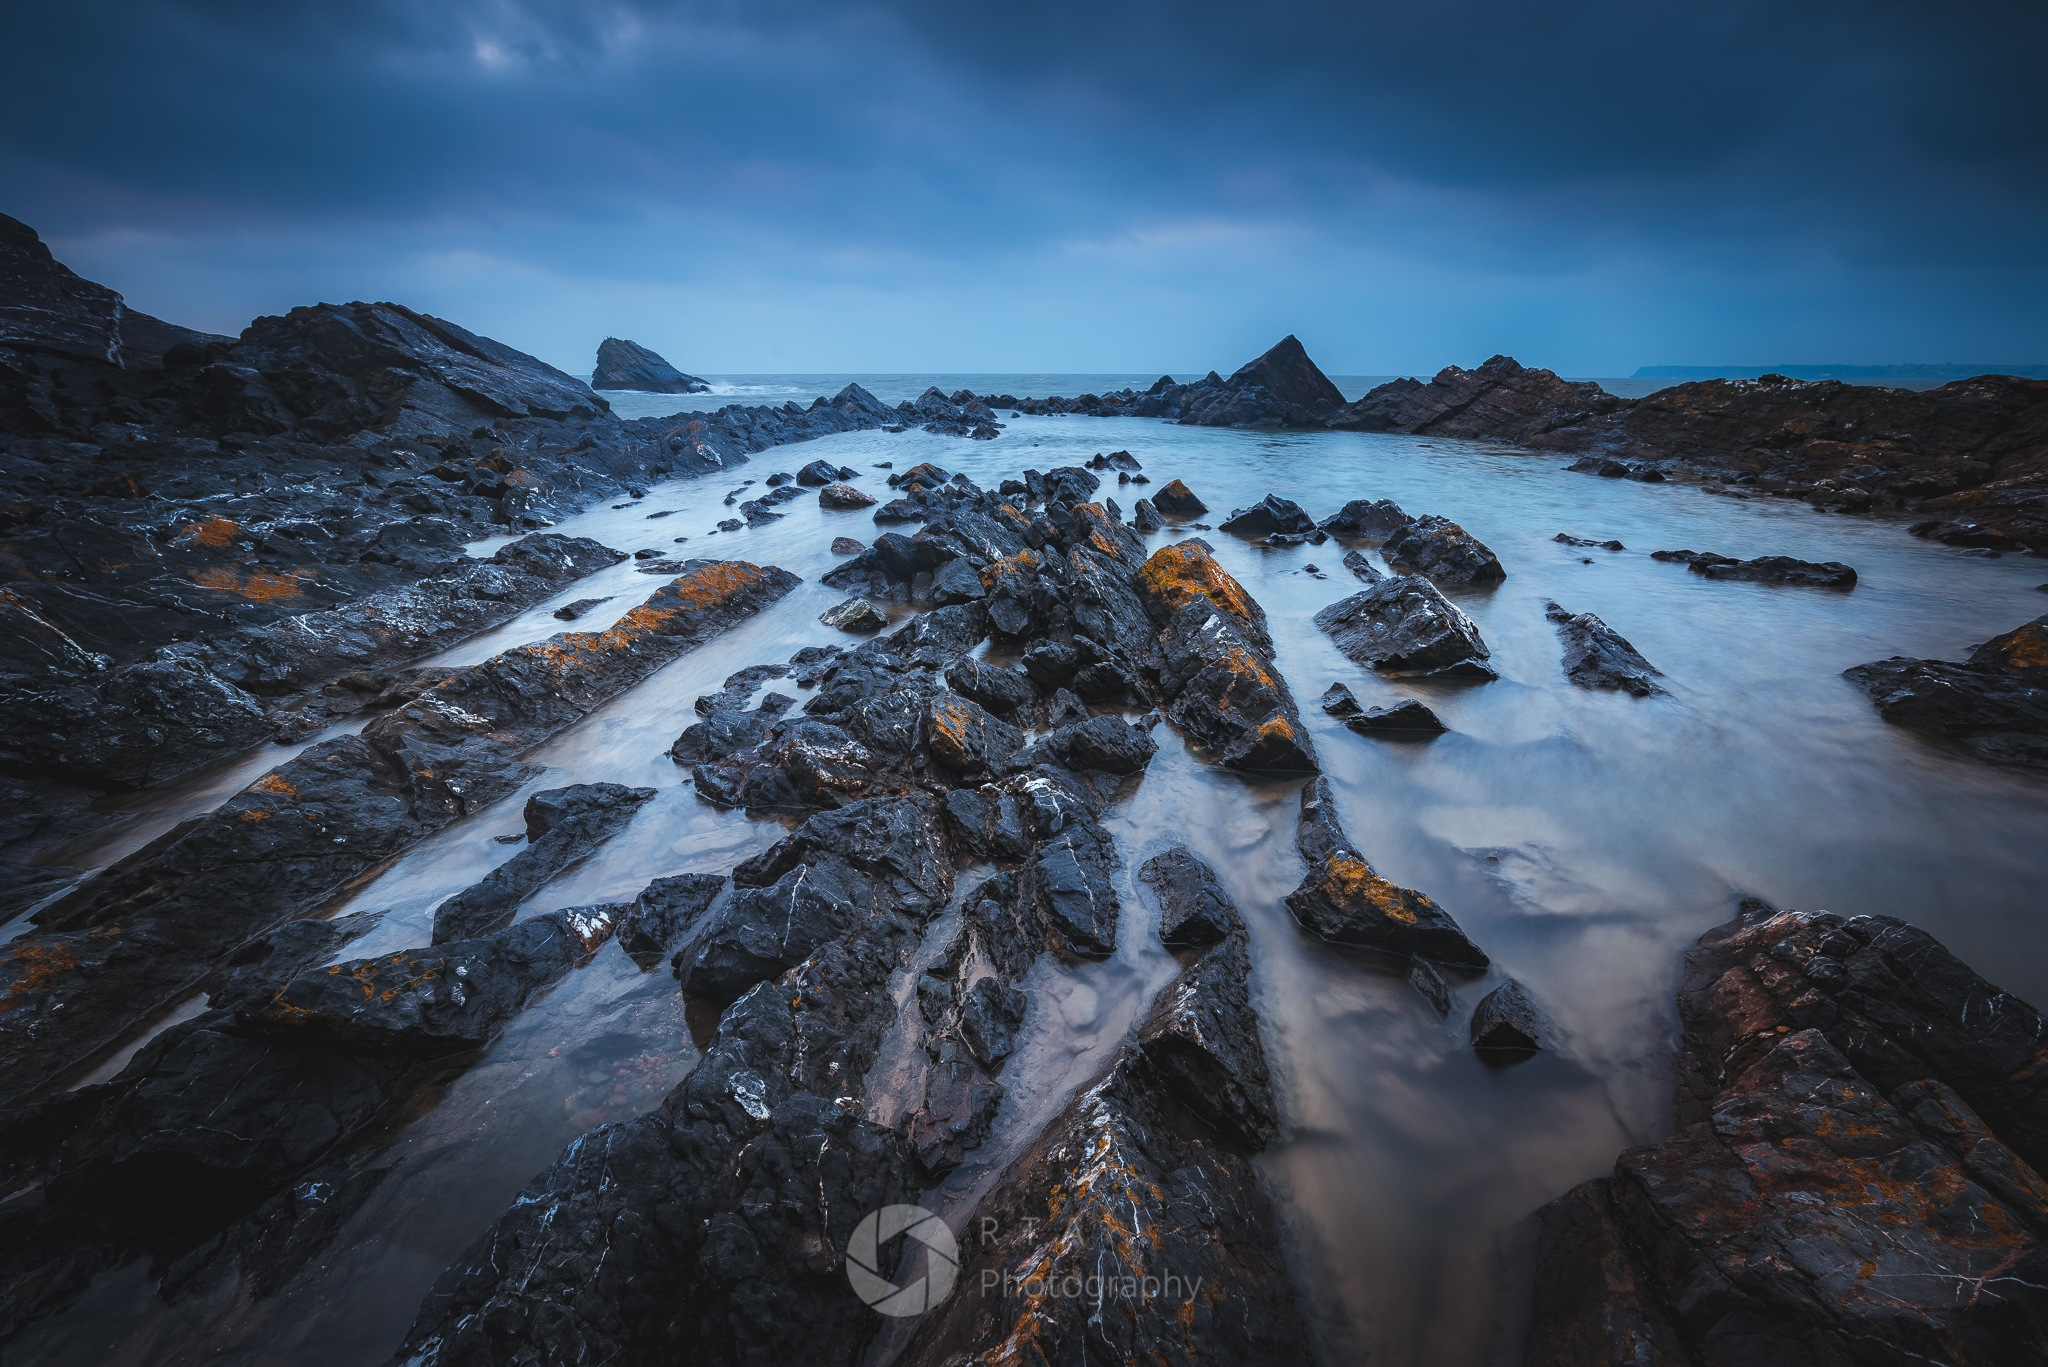 Rock Pool by RTA Photography (Ray Abrahams)